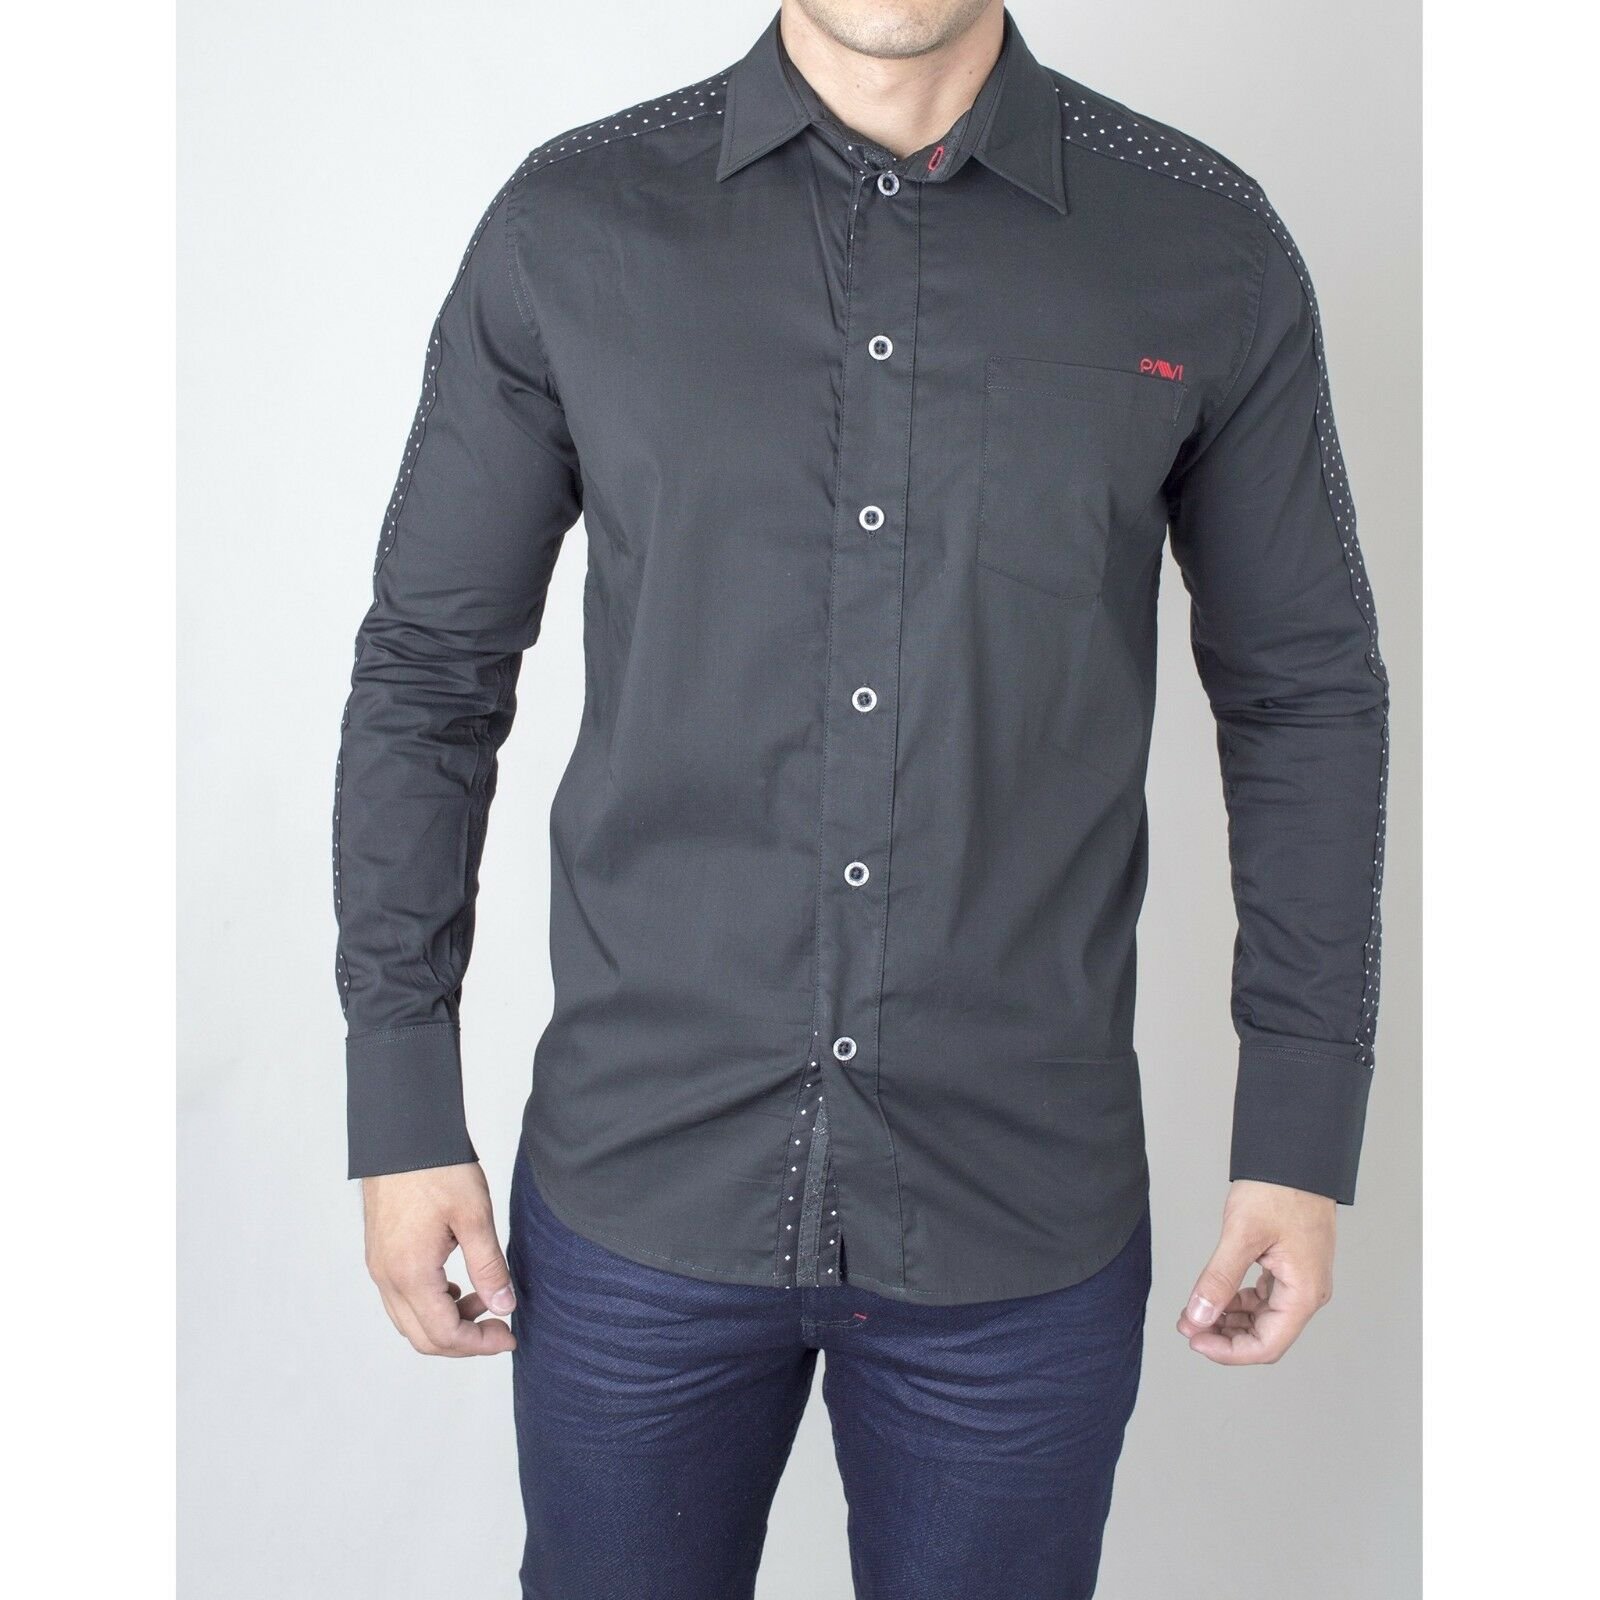 Pavi  shirt schwarz 11-0082 for men